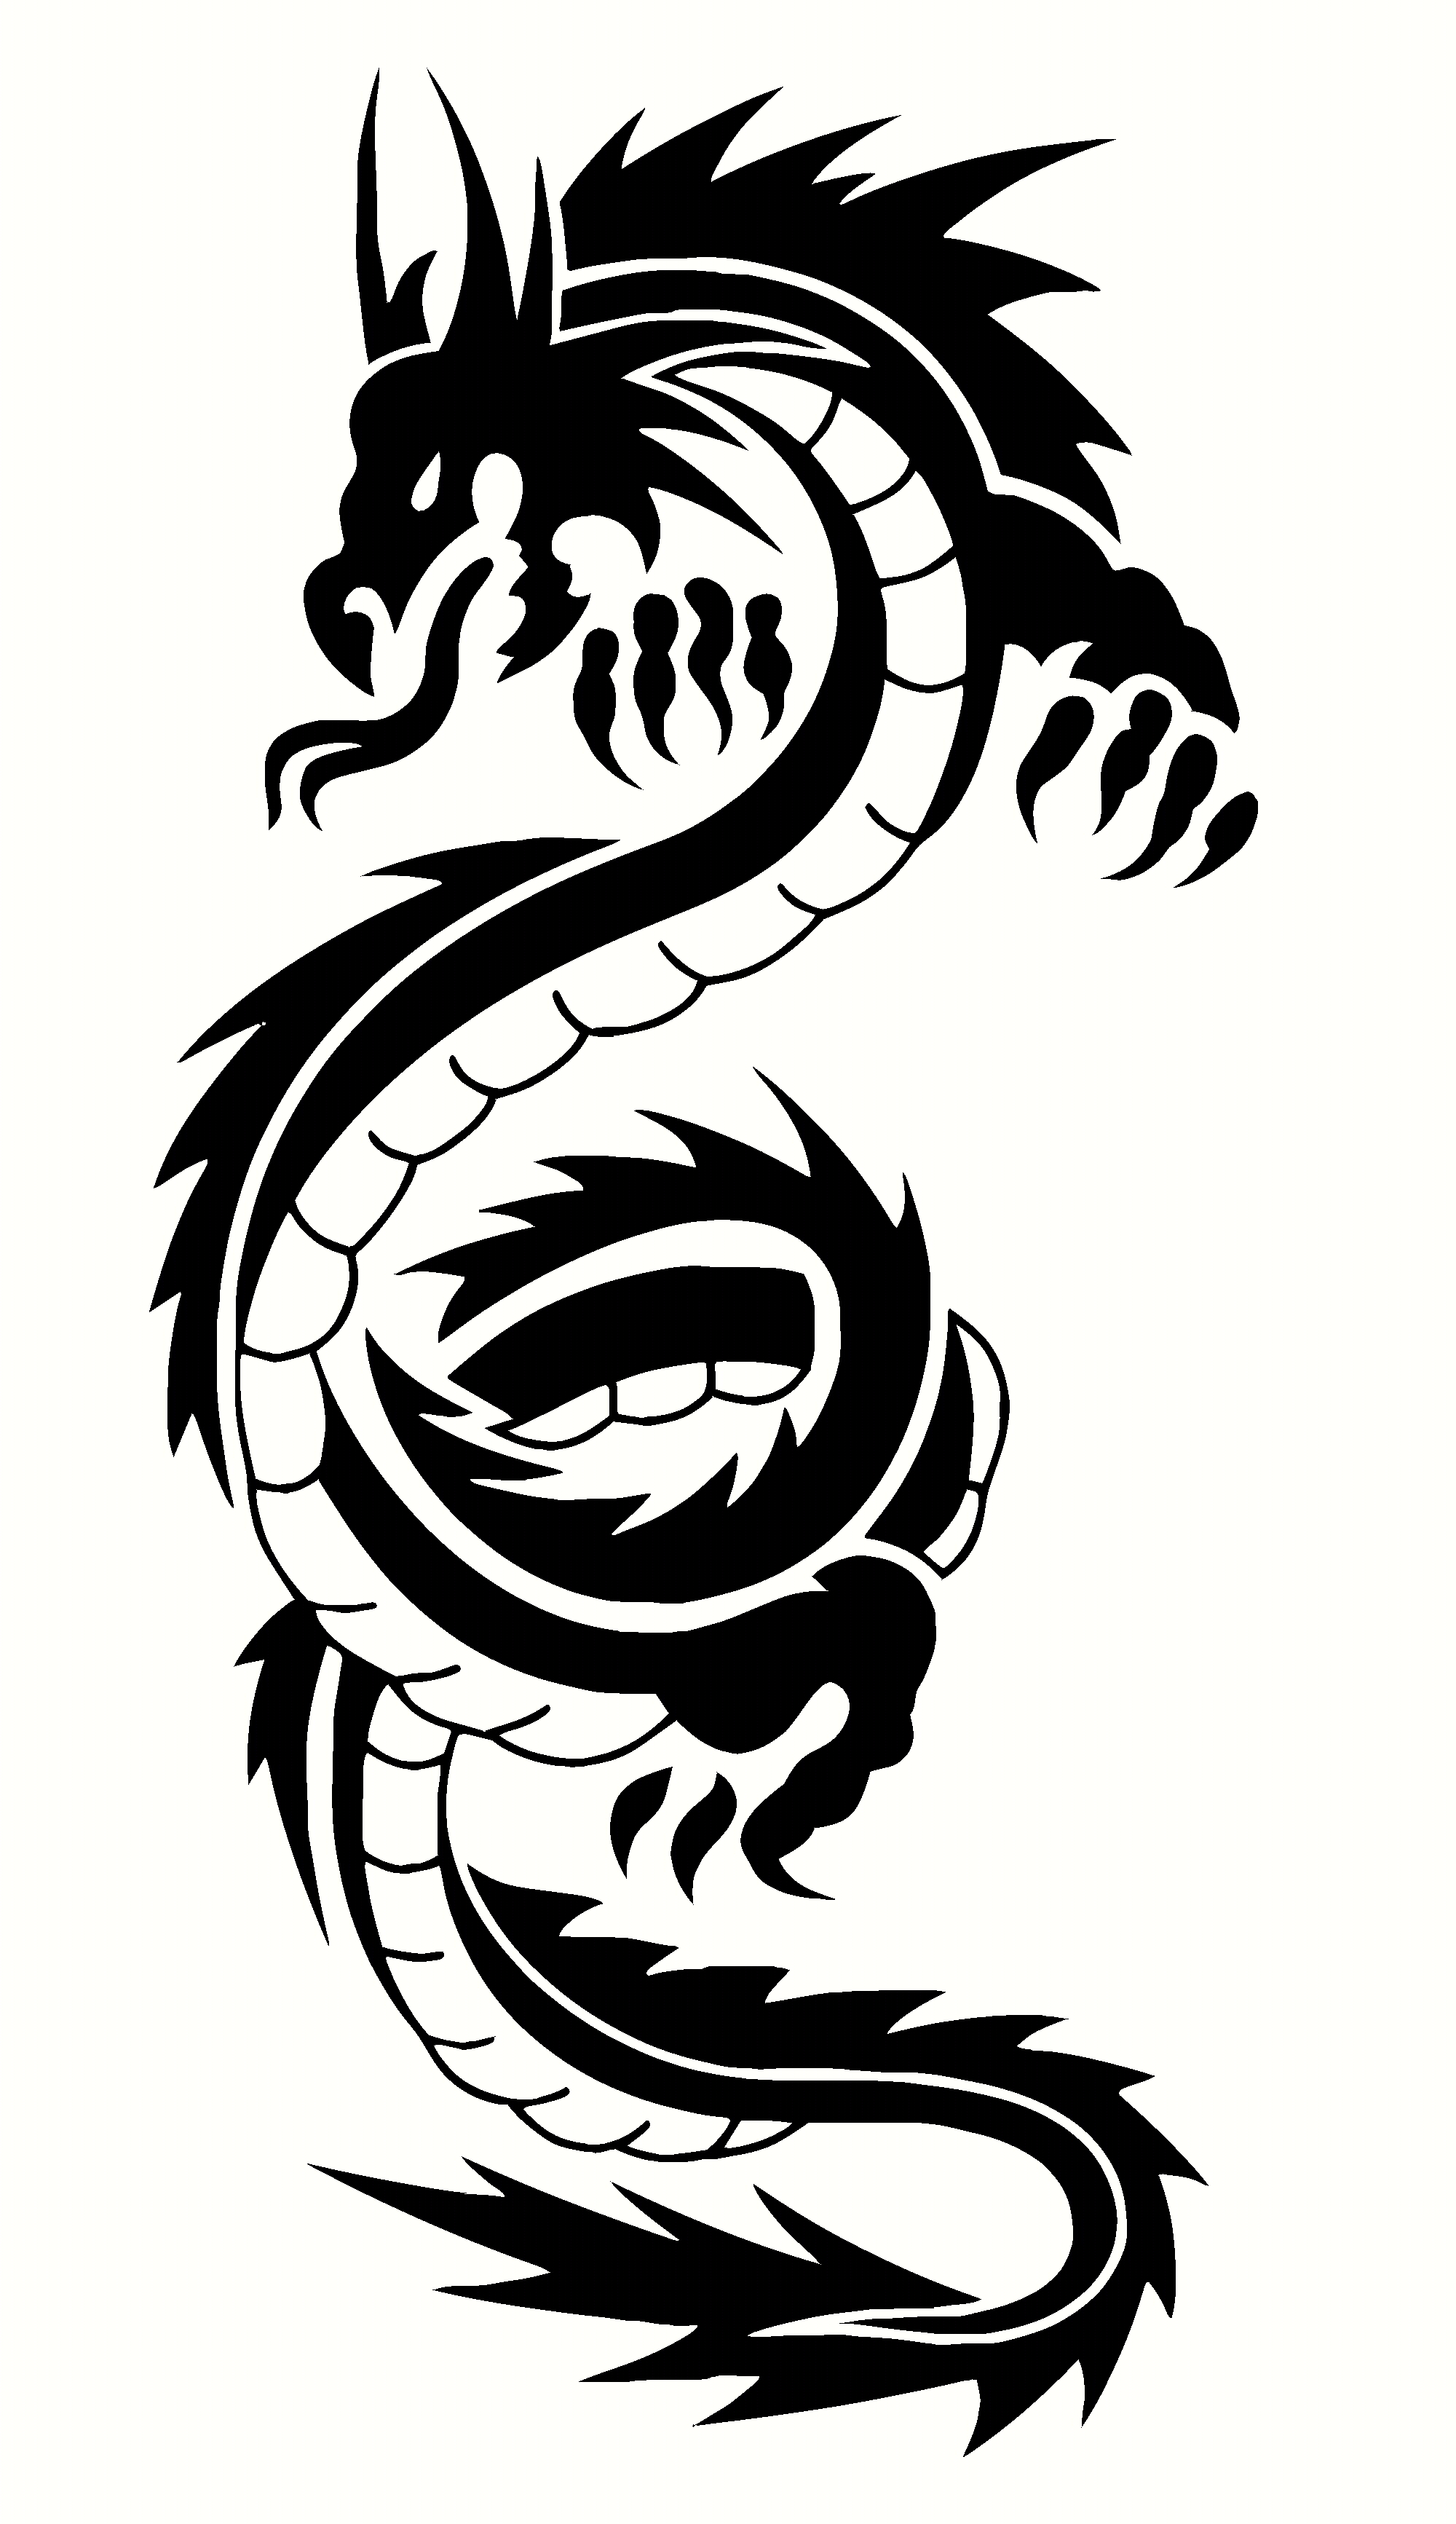 Dragon Graphics - Cliparts.co